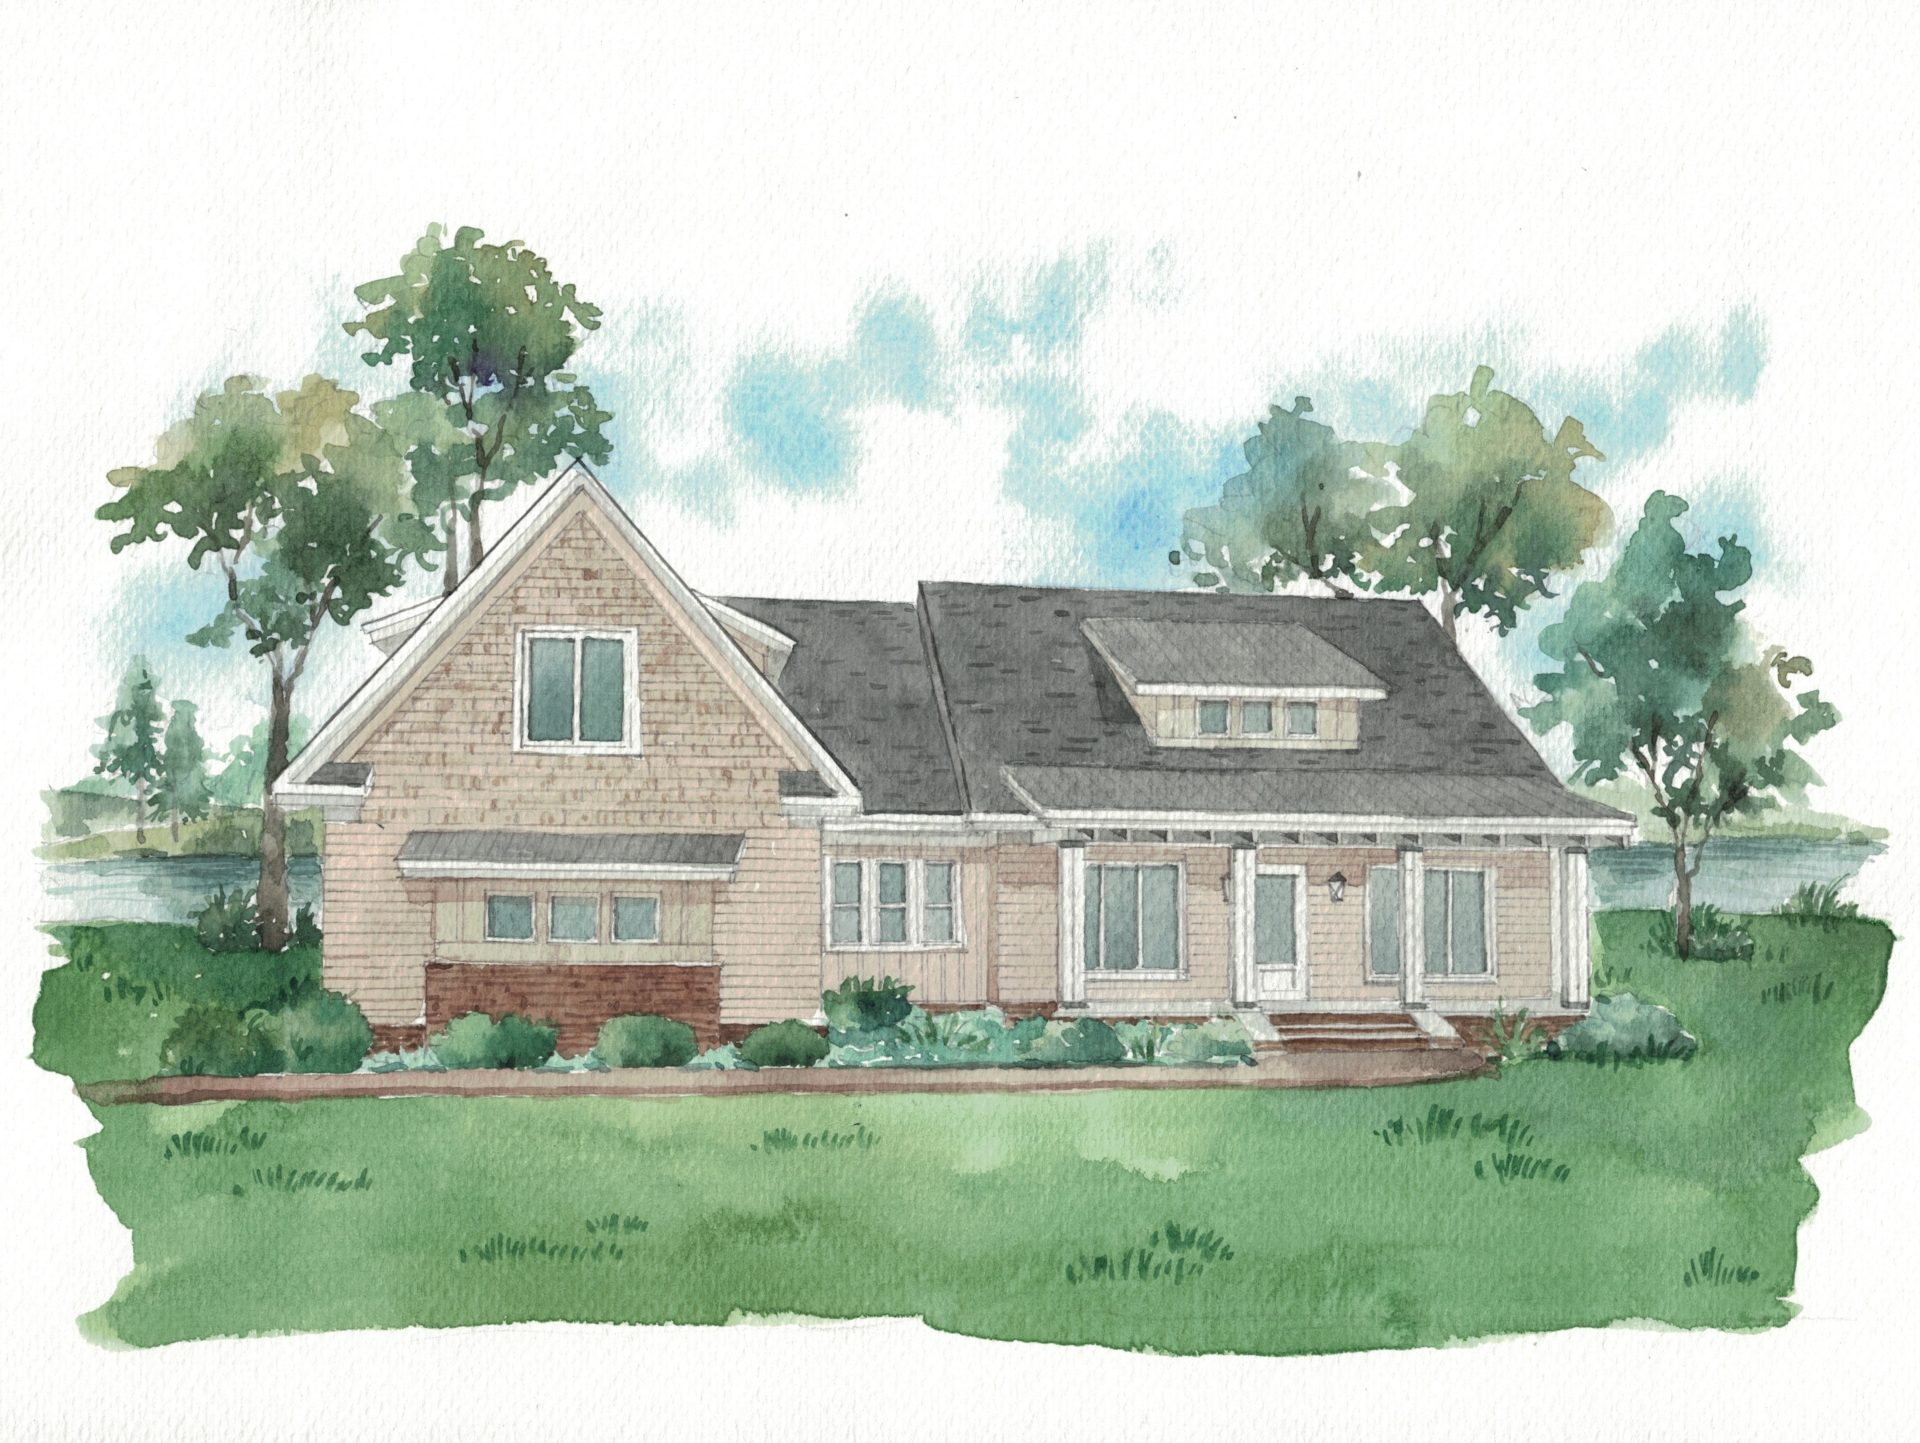 Under Contract: Derbyshire Lakefront, new construction